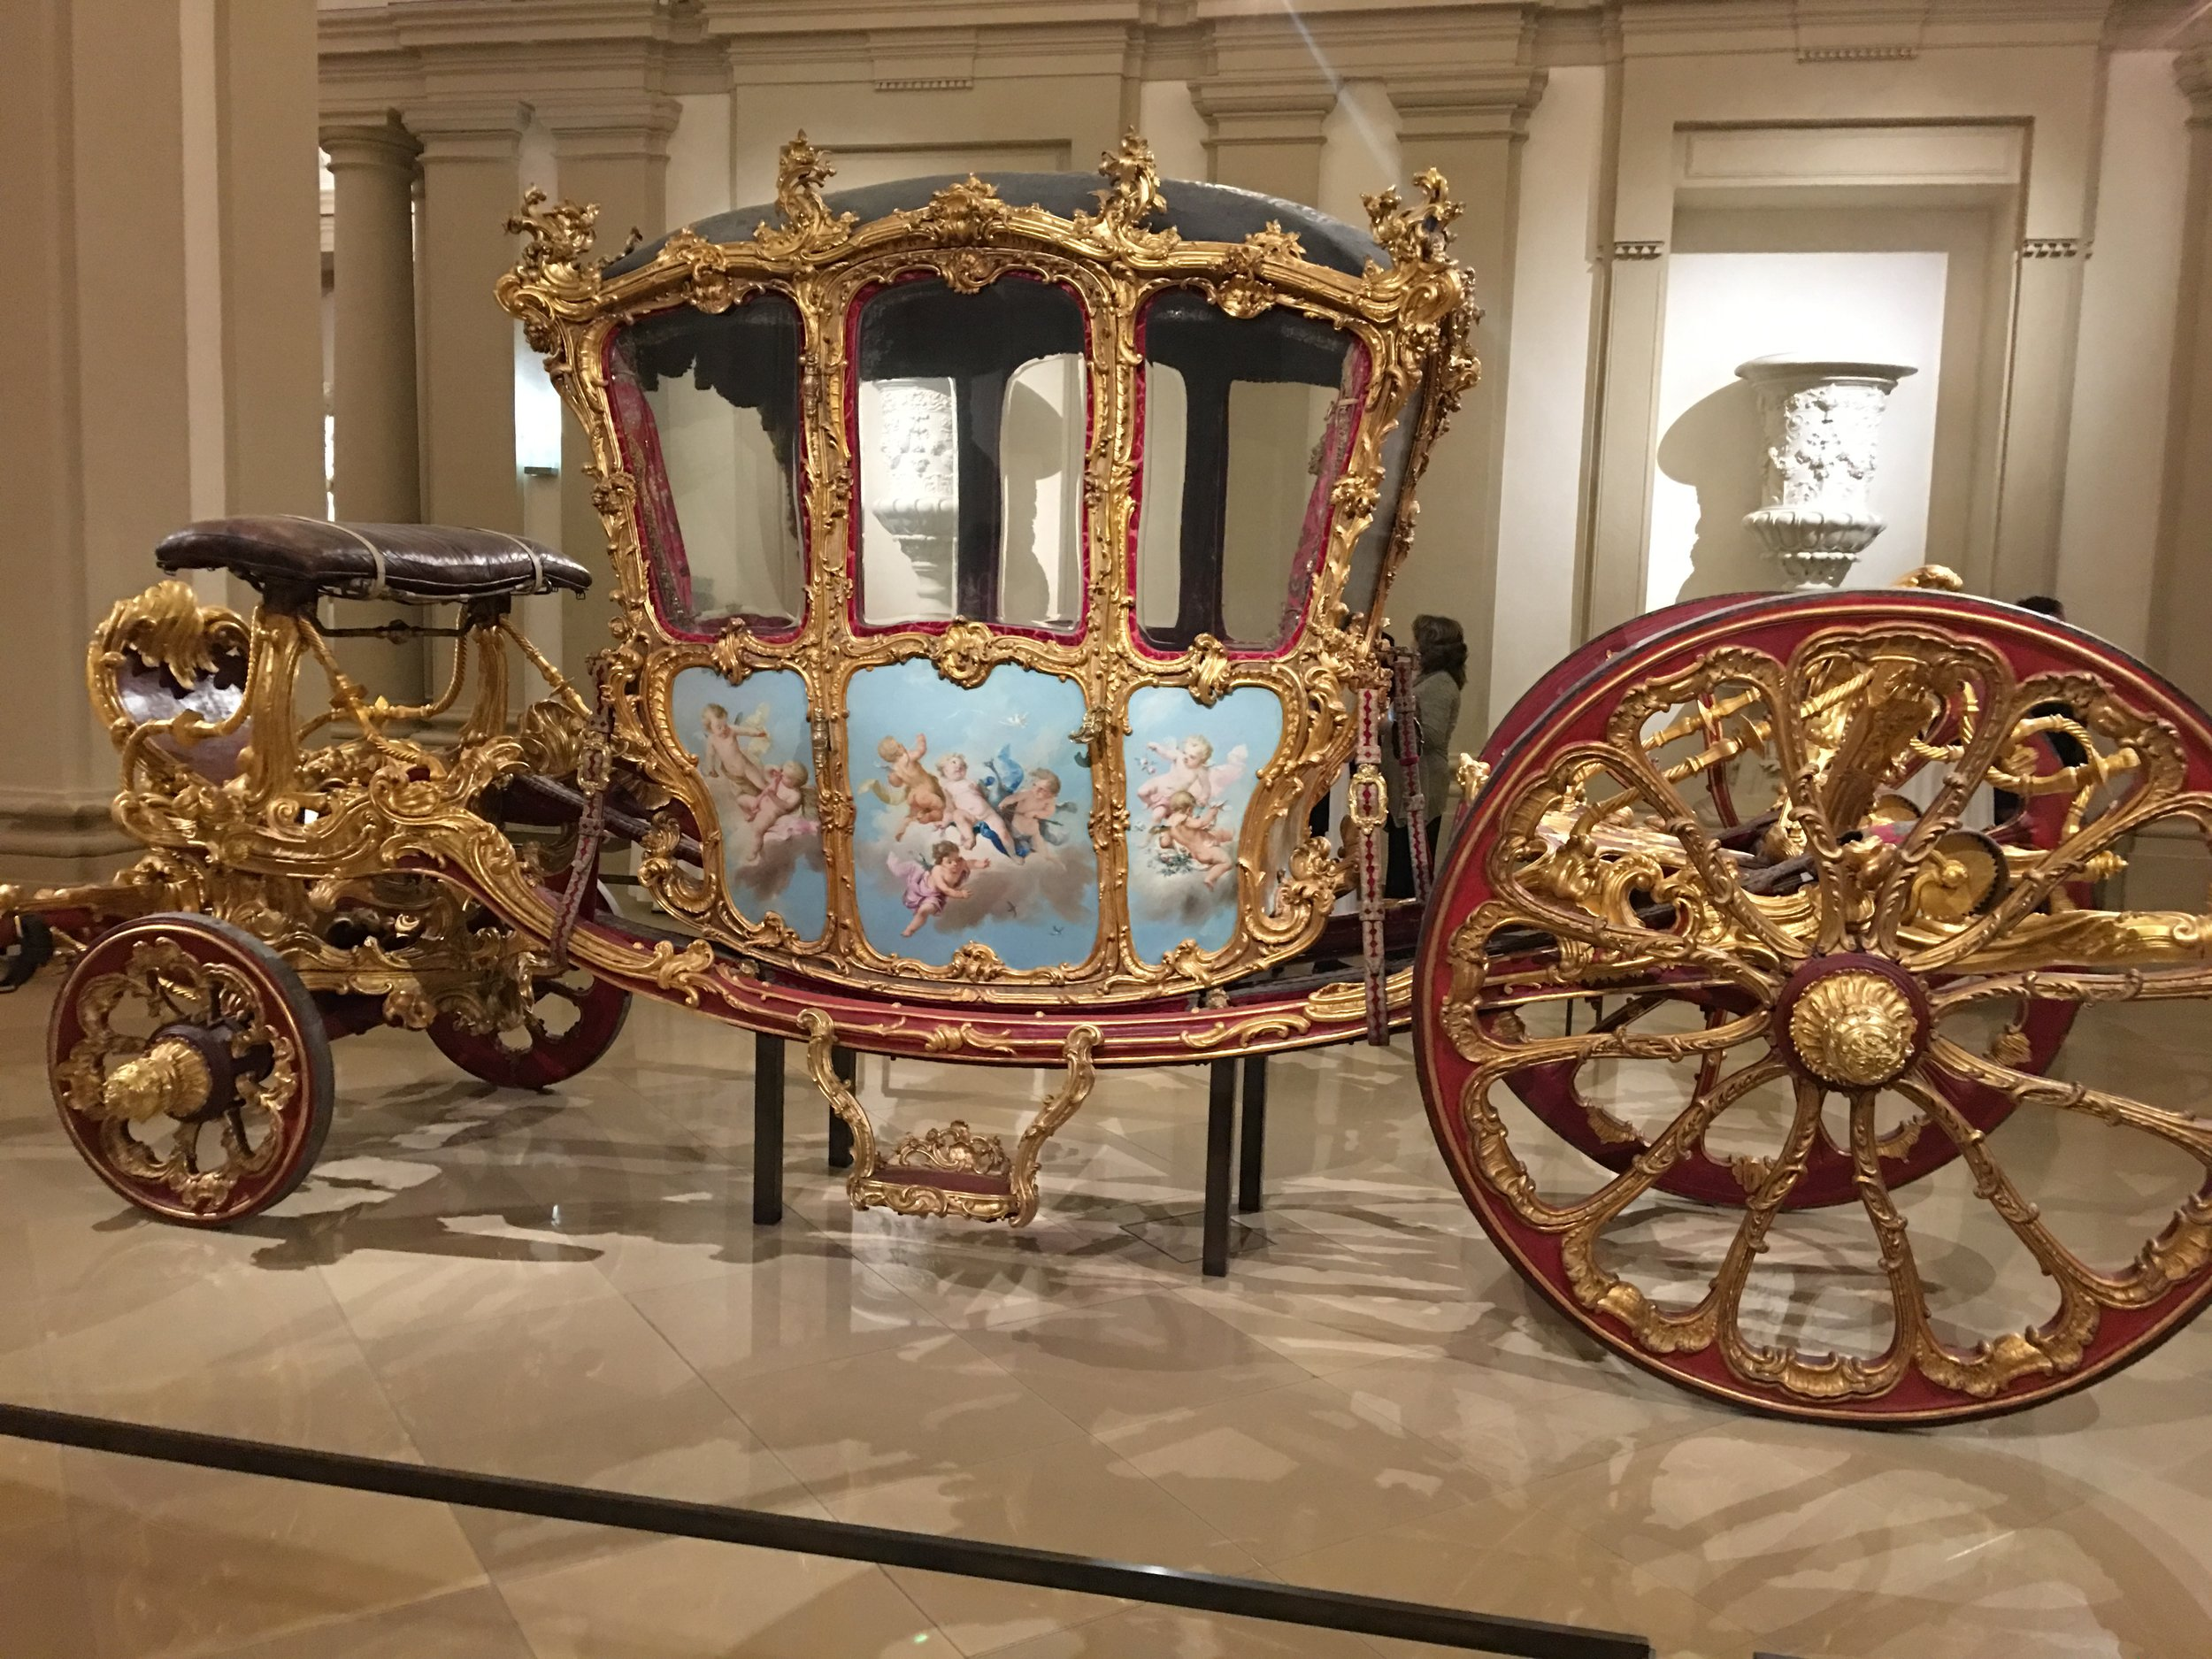 Ornate Carriage on display during our Scenic Opal Danube cruise